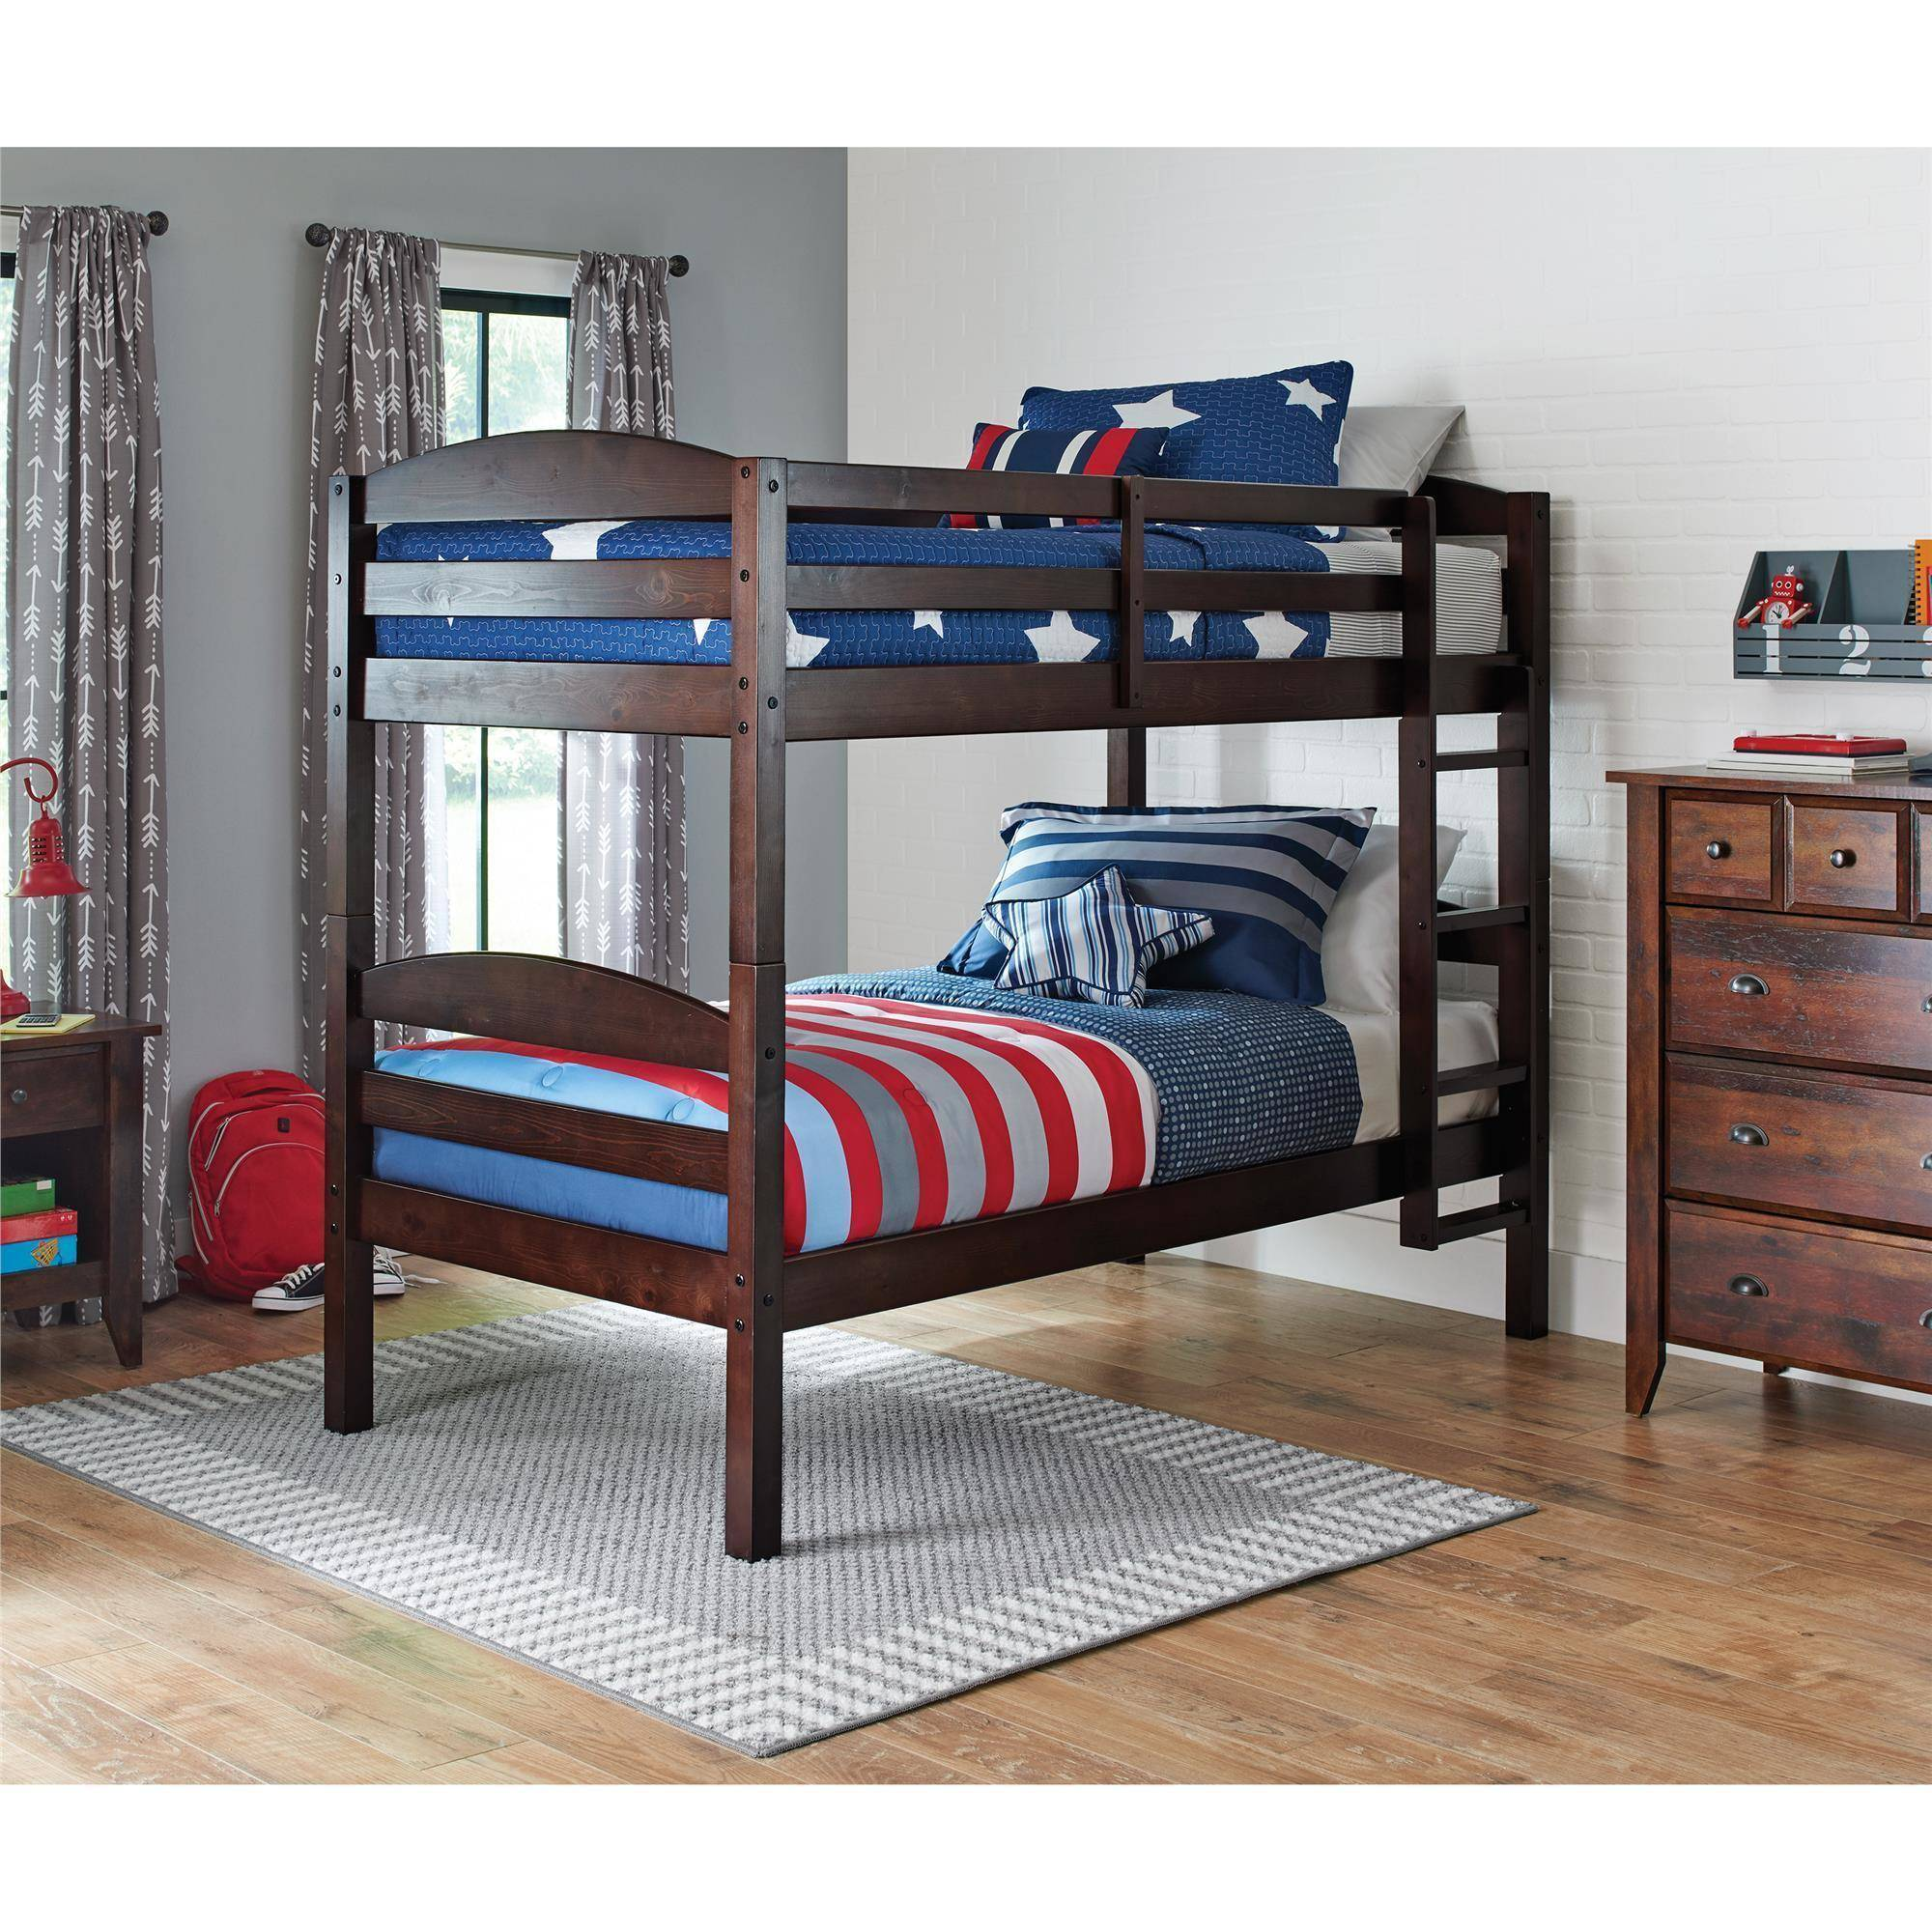 New bunk beds with mattresses better homes and gardens leighton twin over twin wood bunk bed ftgmqqs